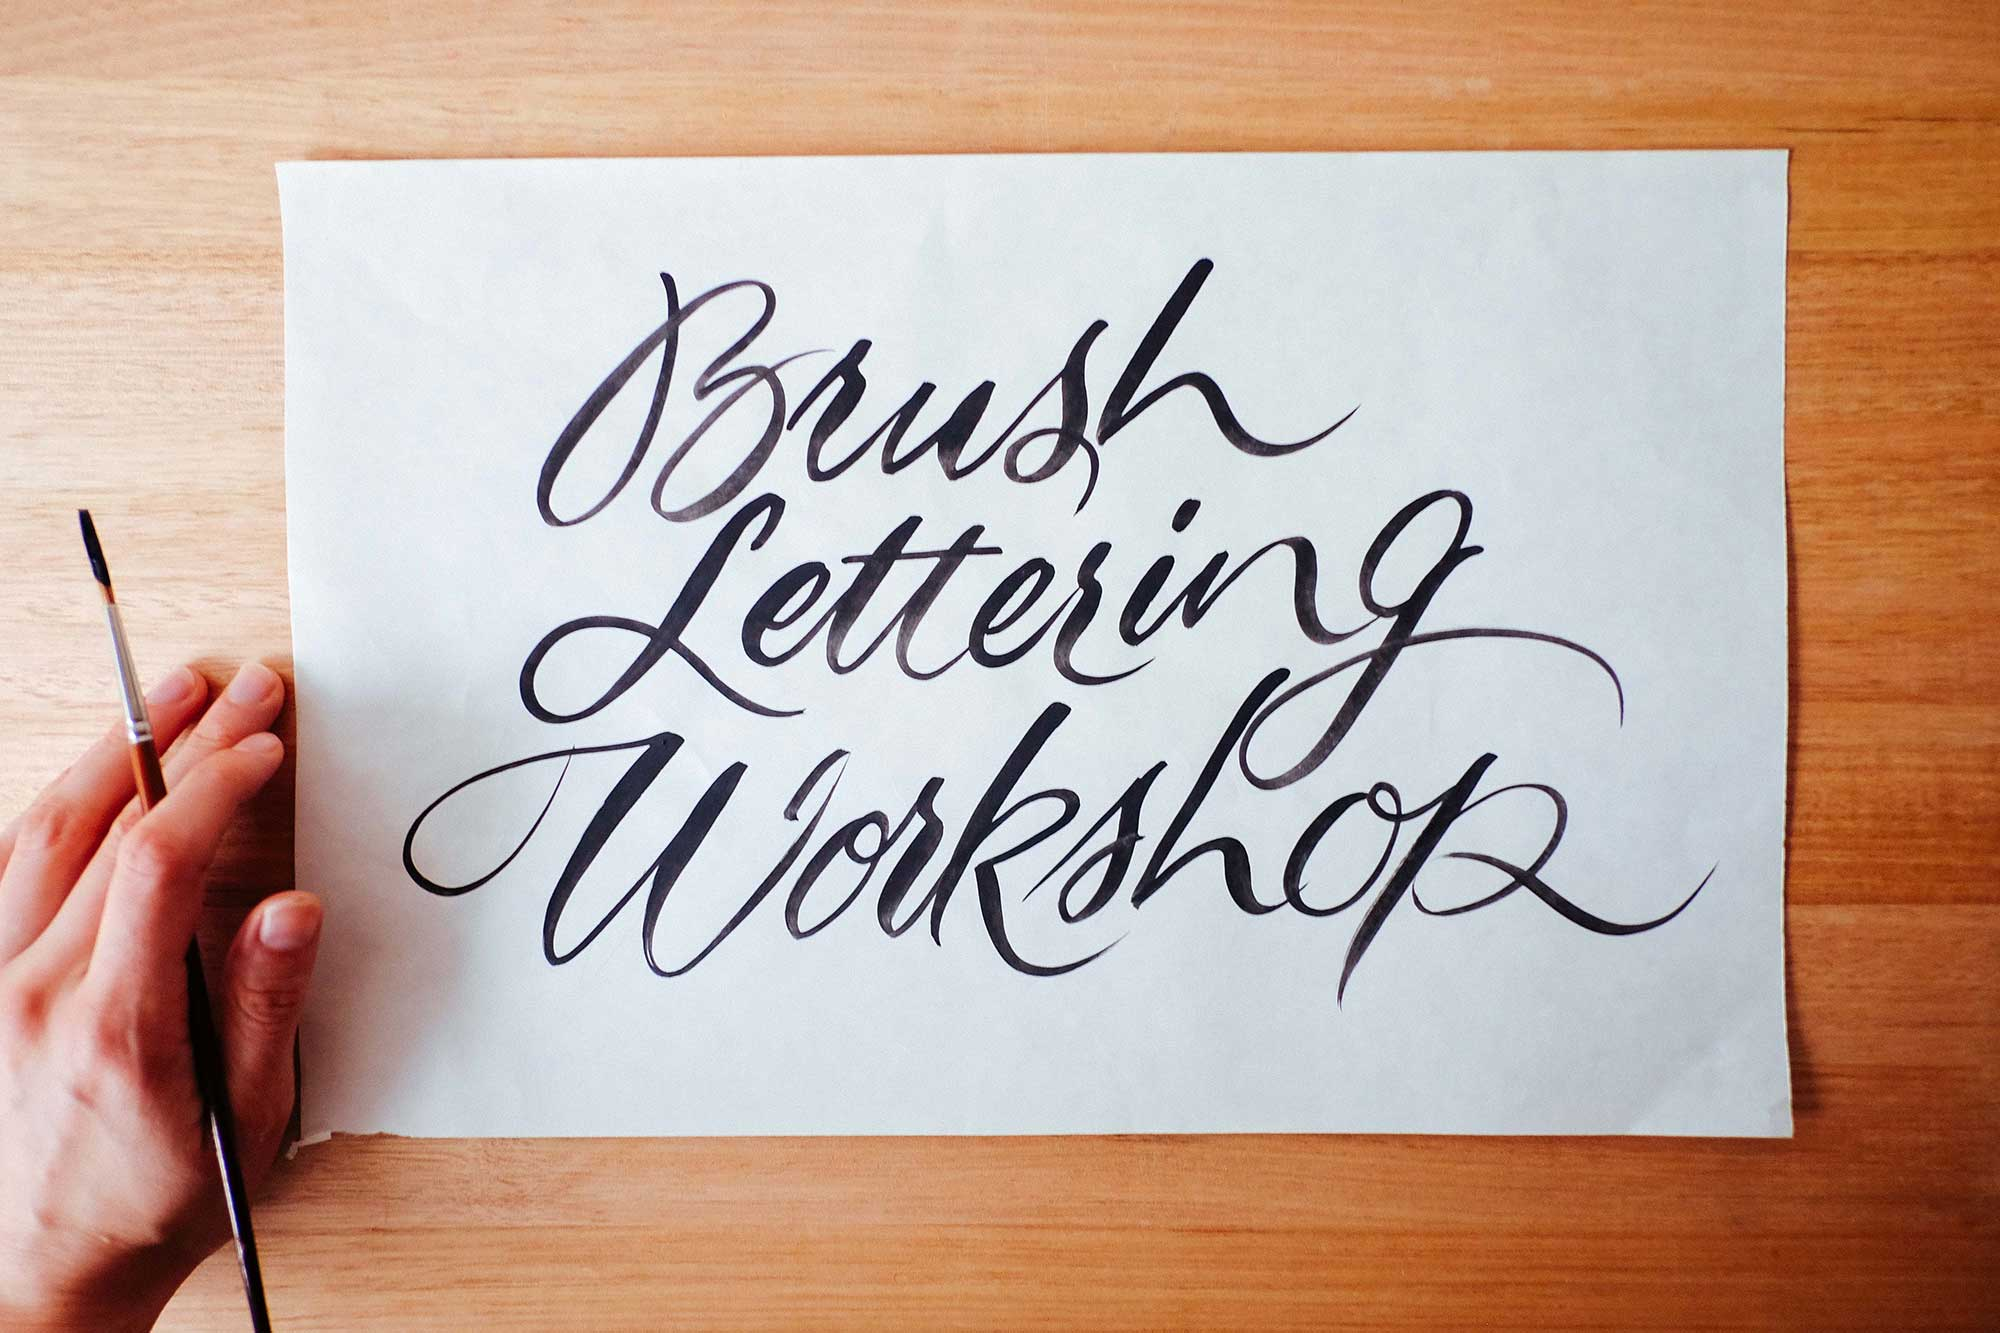 Brush Lettering Workshop, Melbourne 4th-5th Nov 2017